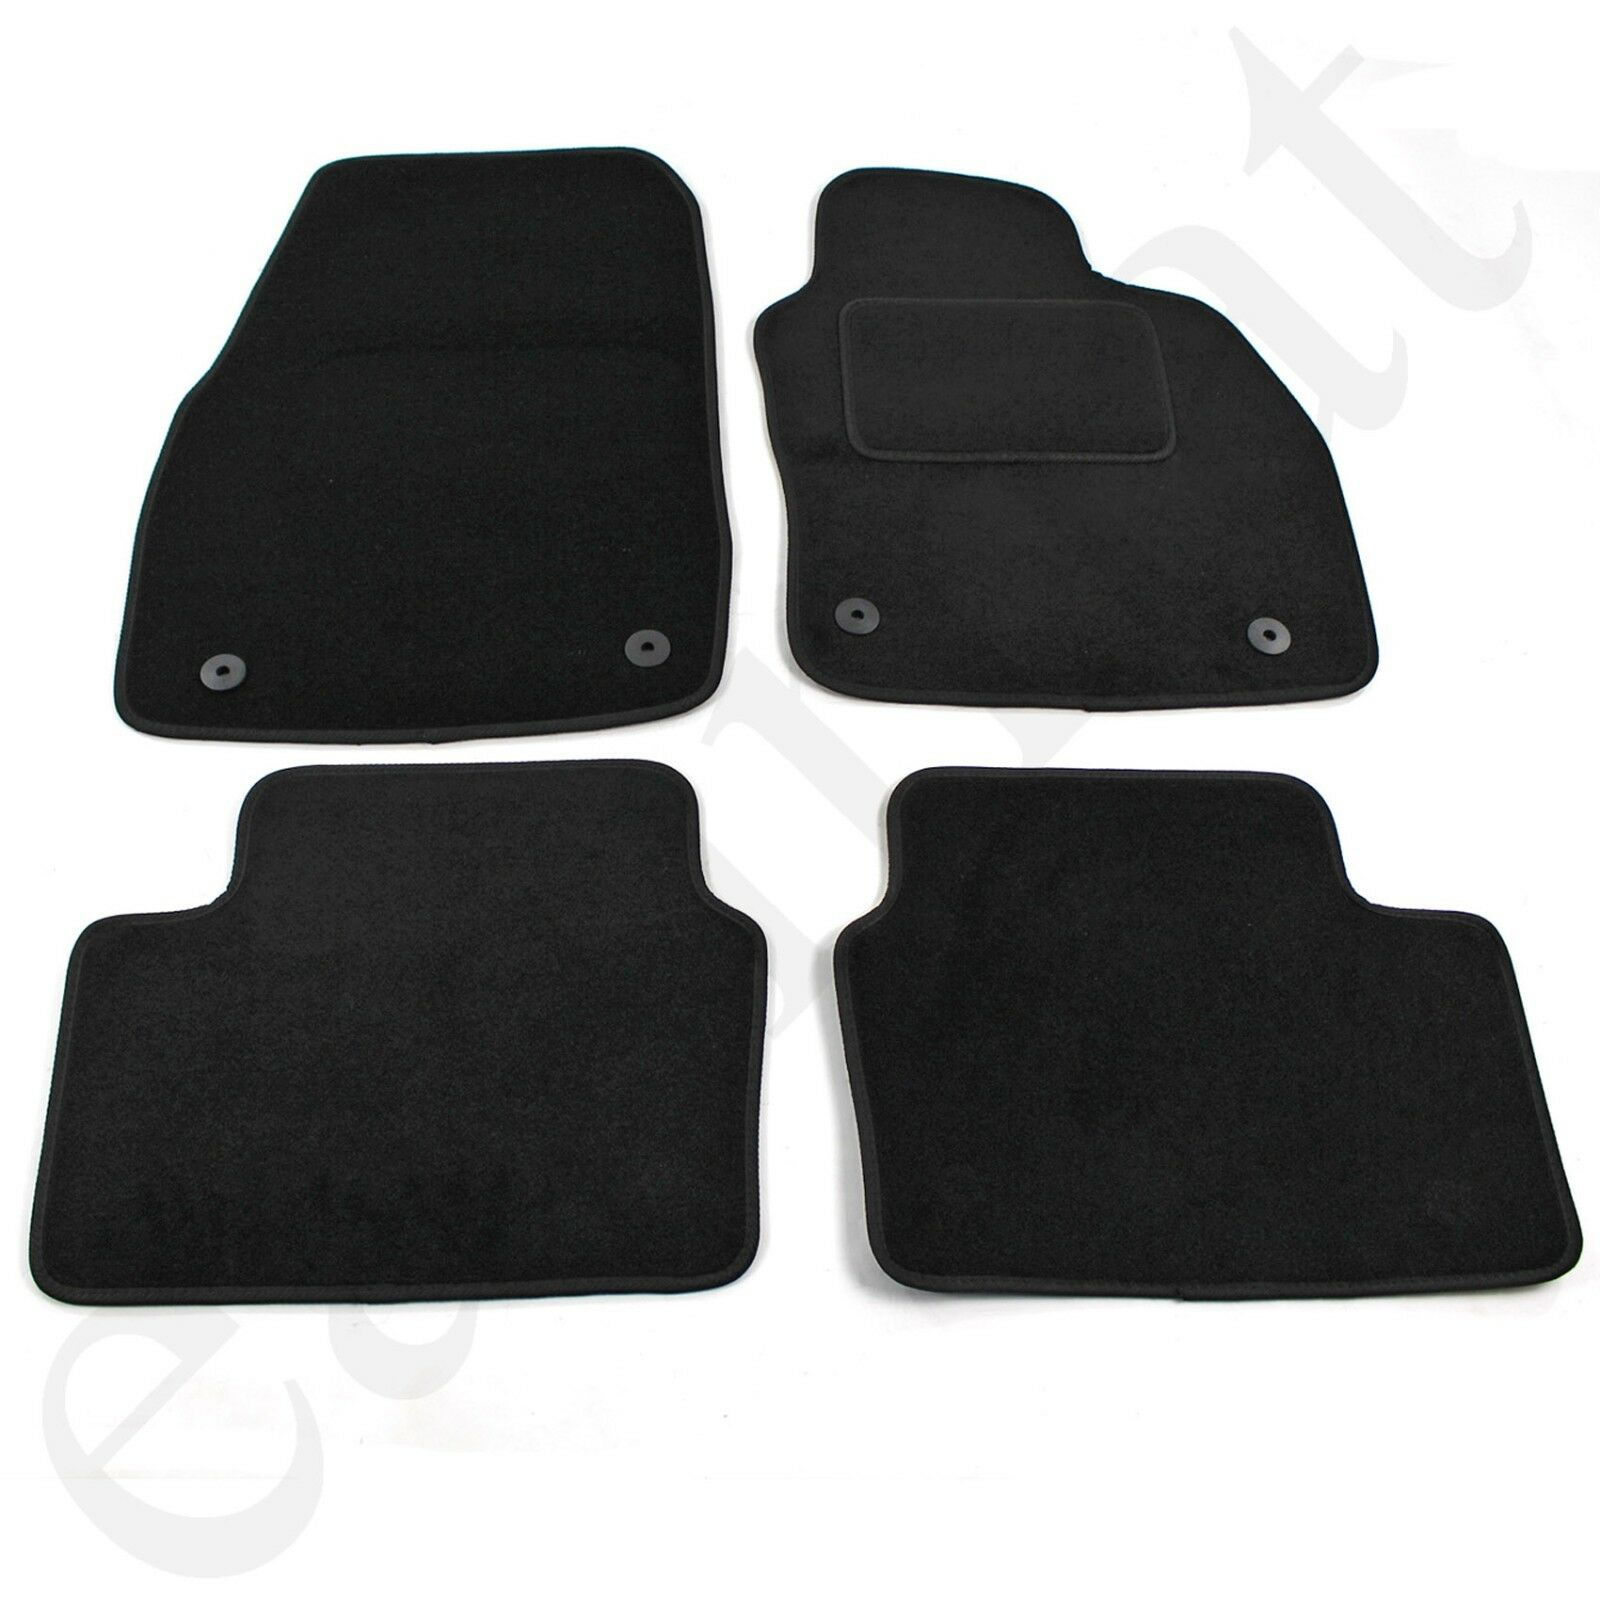 Car Parts - Vauxhall Astra H Mk5 2004-2009 Tailored Carpet Car Mats Black 4pc Floor Mat Set